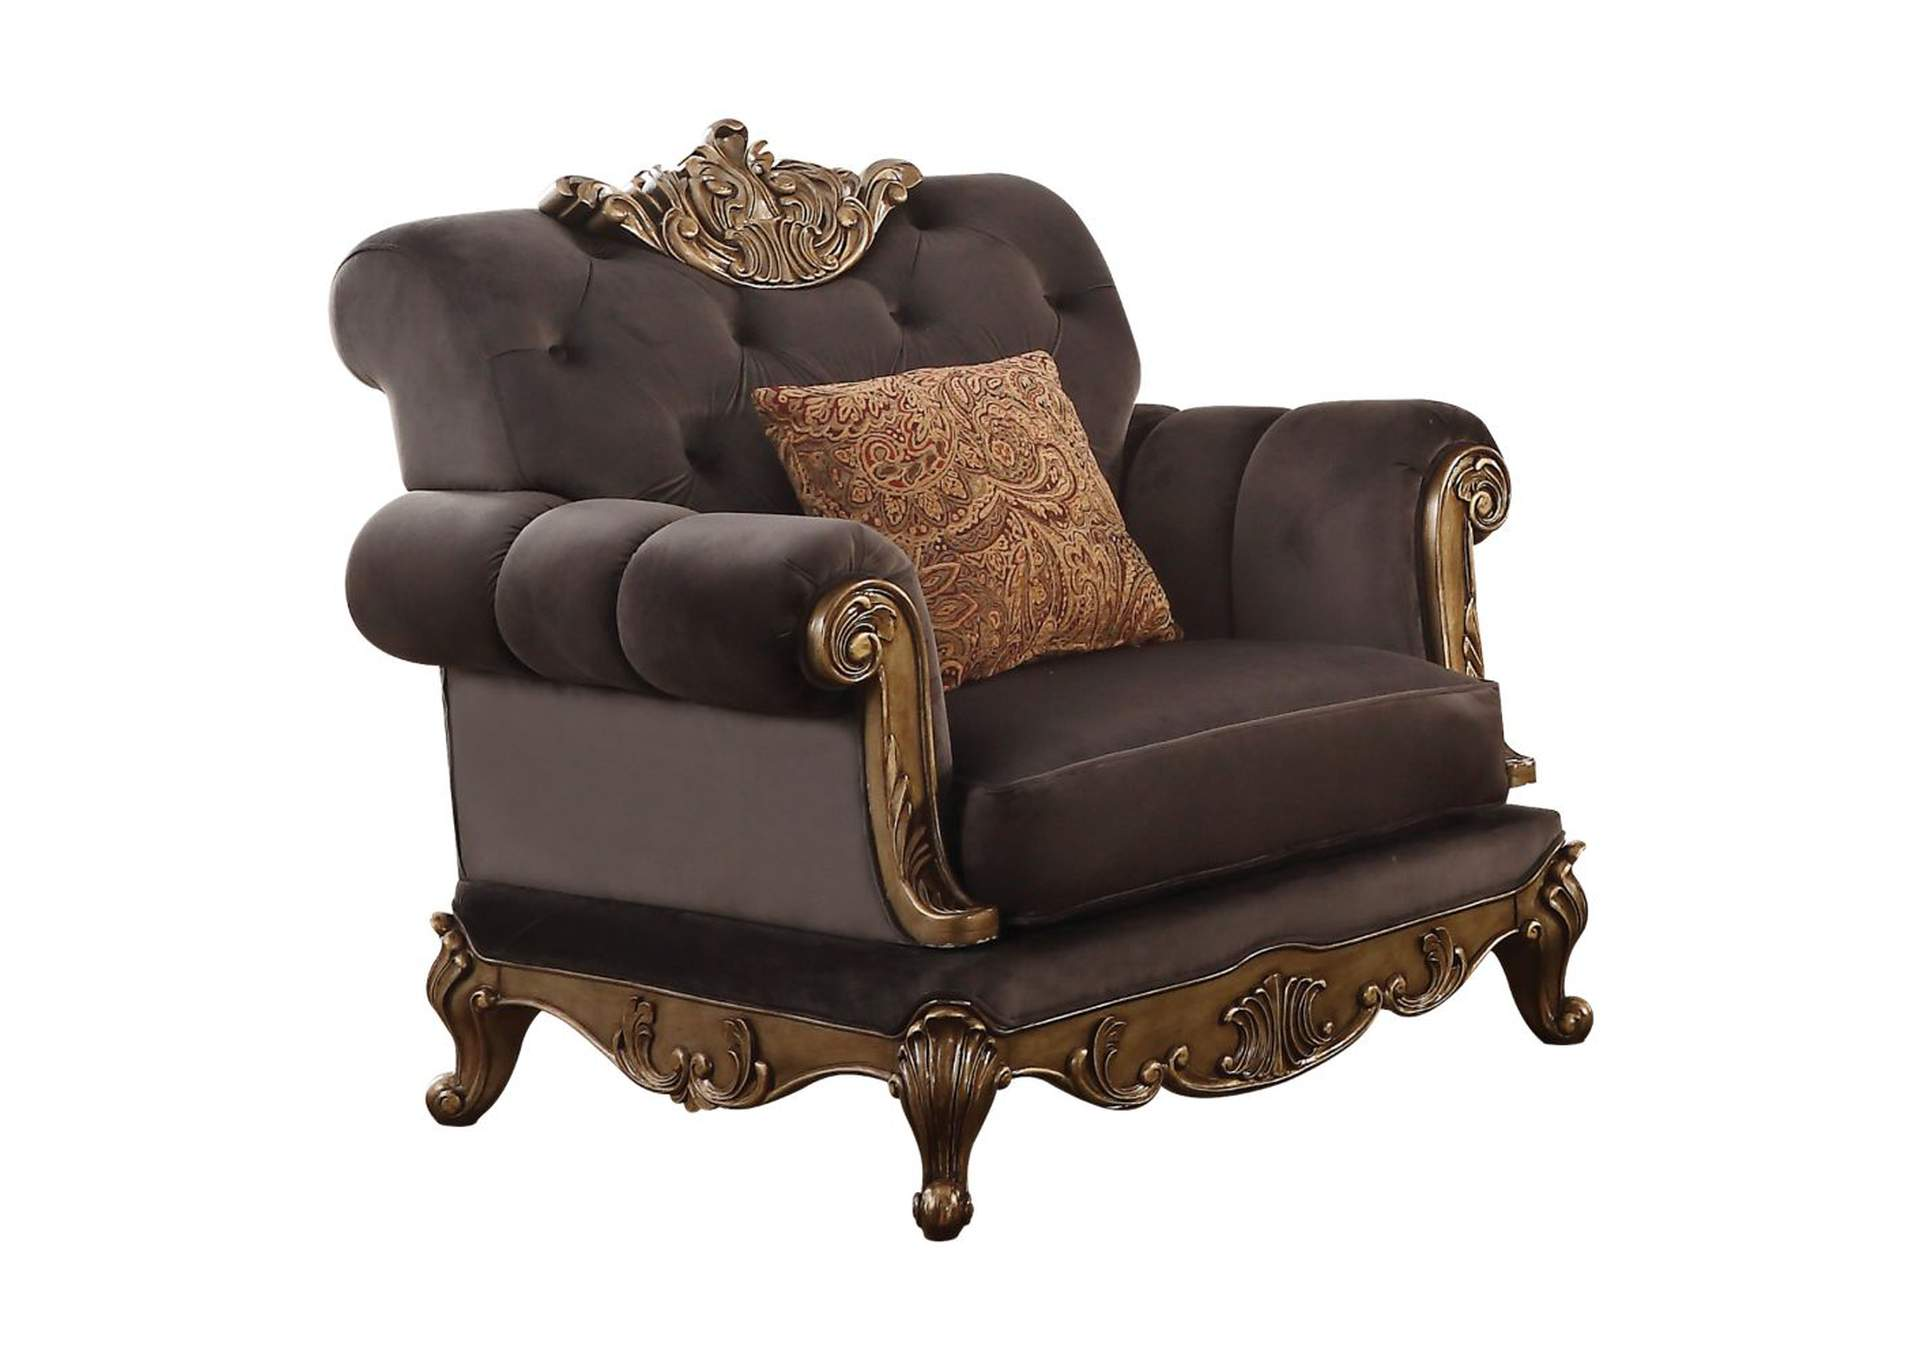 Orianne Charcoal Fabric & Antique Gold Chair,Acme